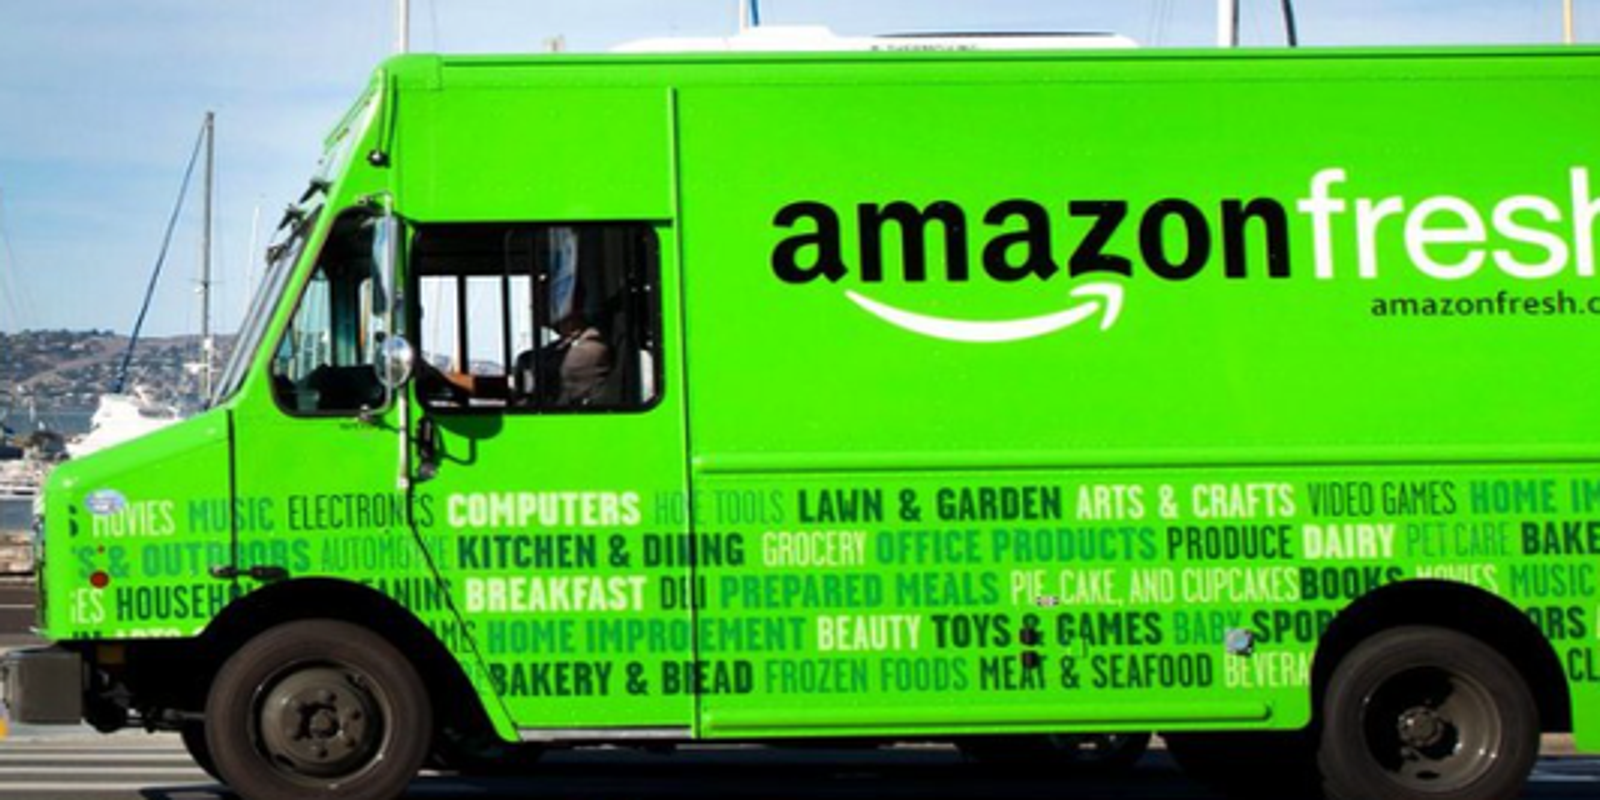 Amazon now offers free food delivery for Prime members